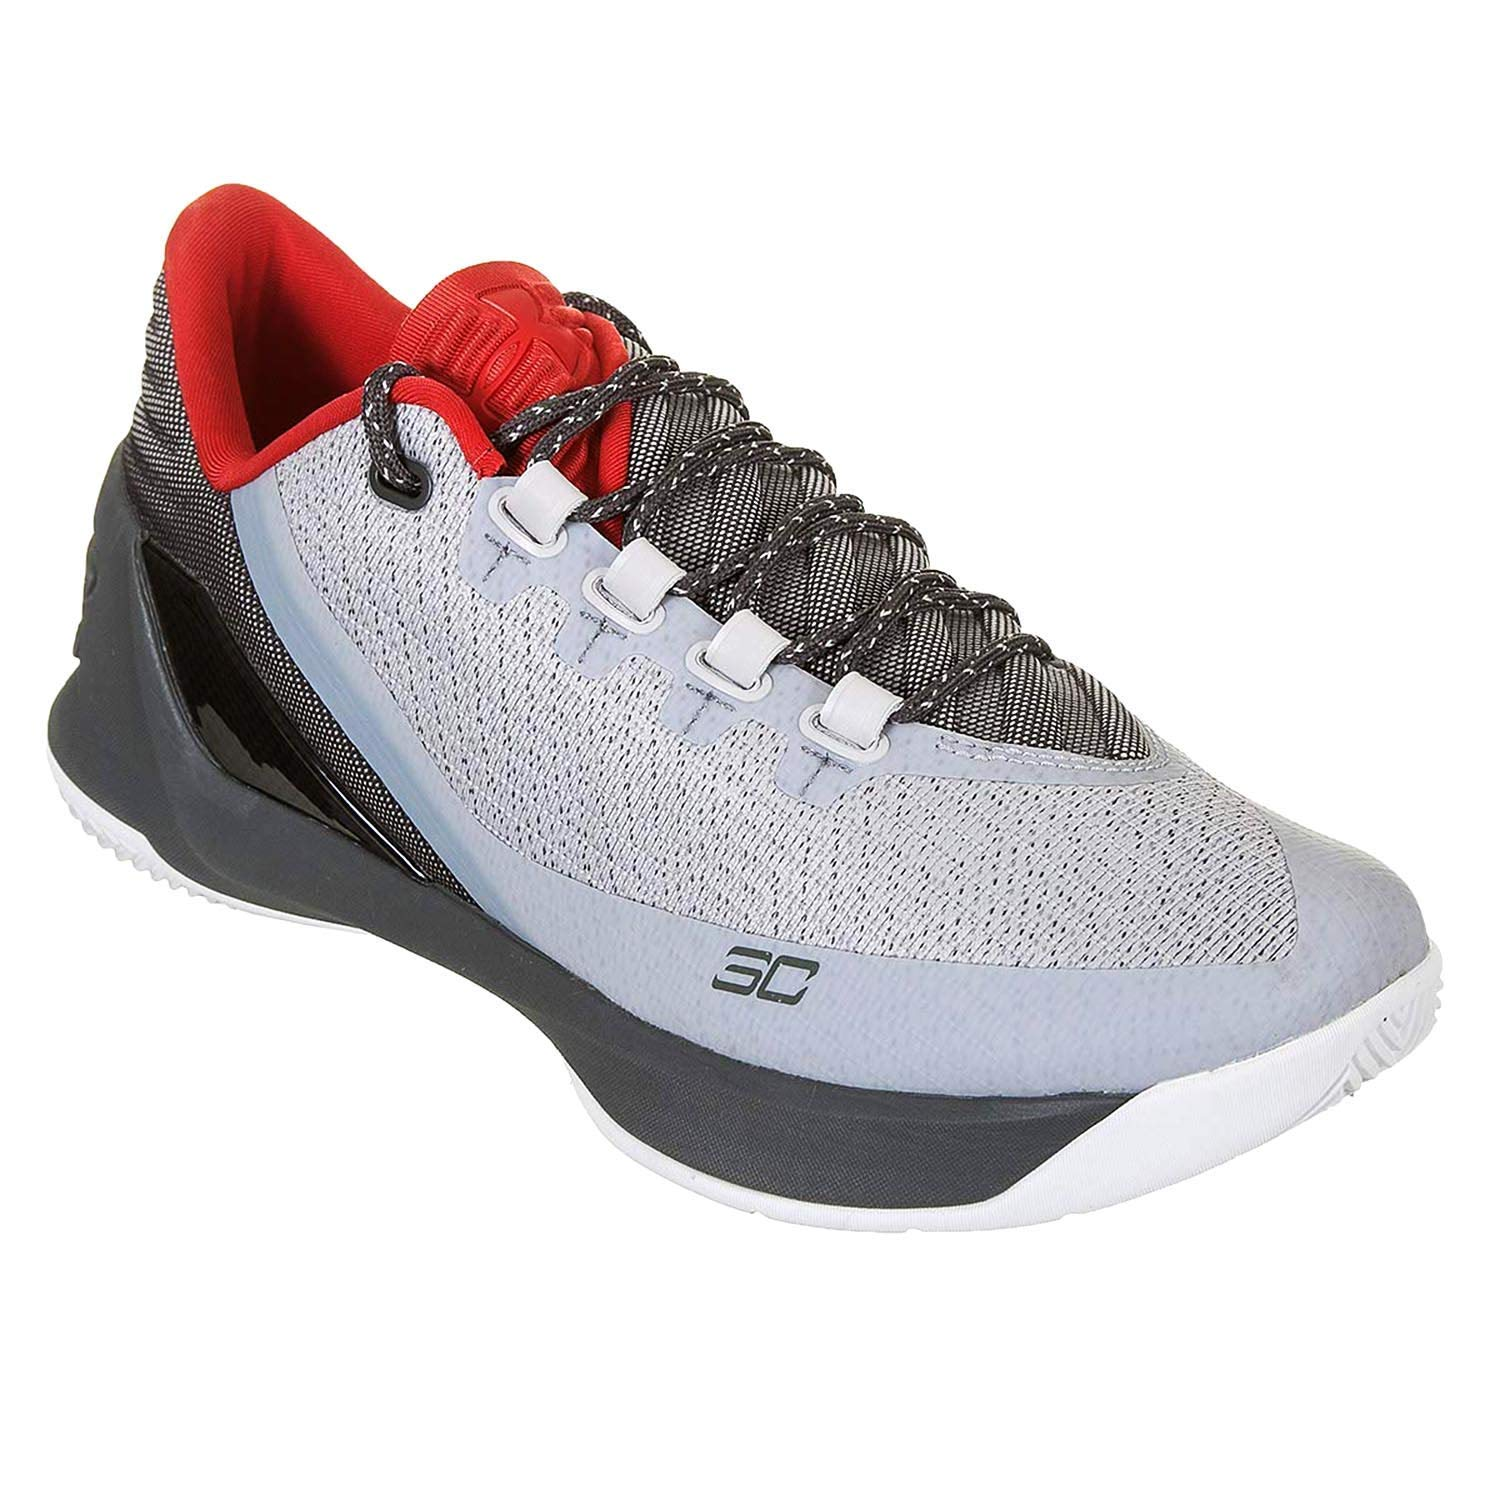 timeless design 38756 026ad Amazon.com | Under Armour Boys Curry 3 Low Basketball Shoes ...